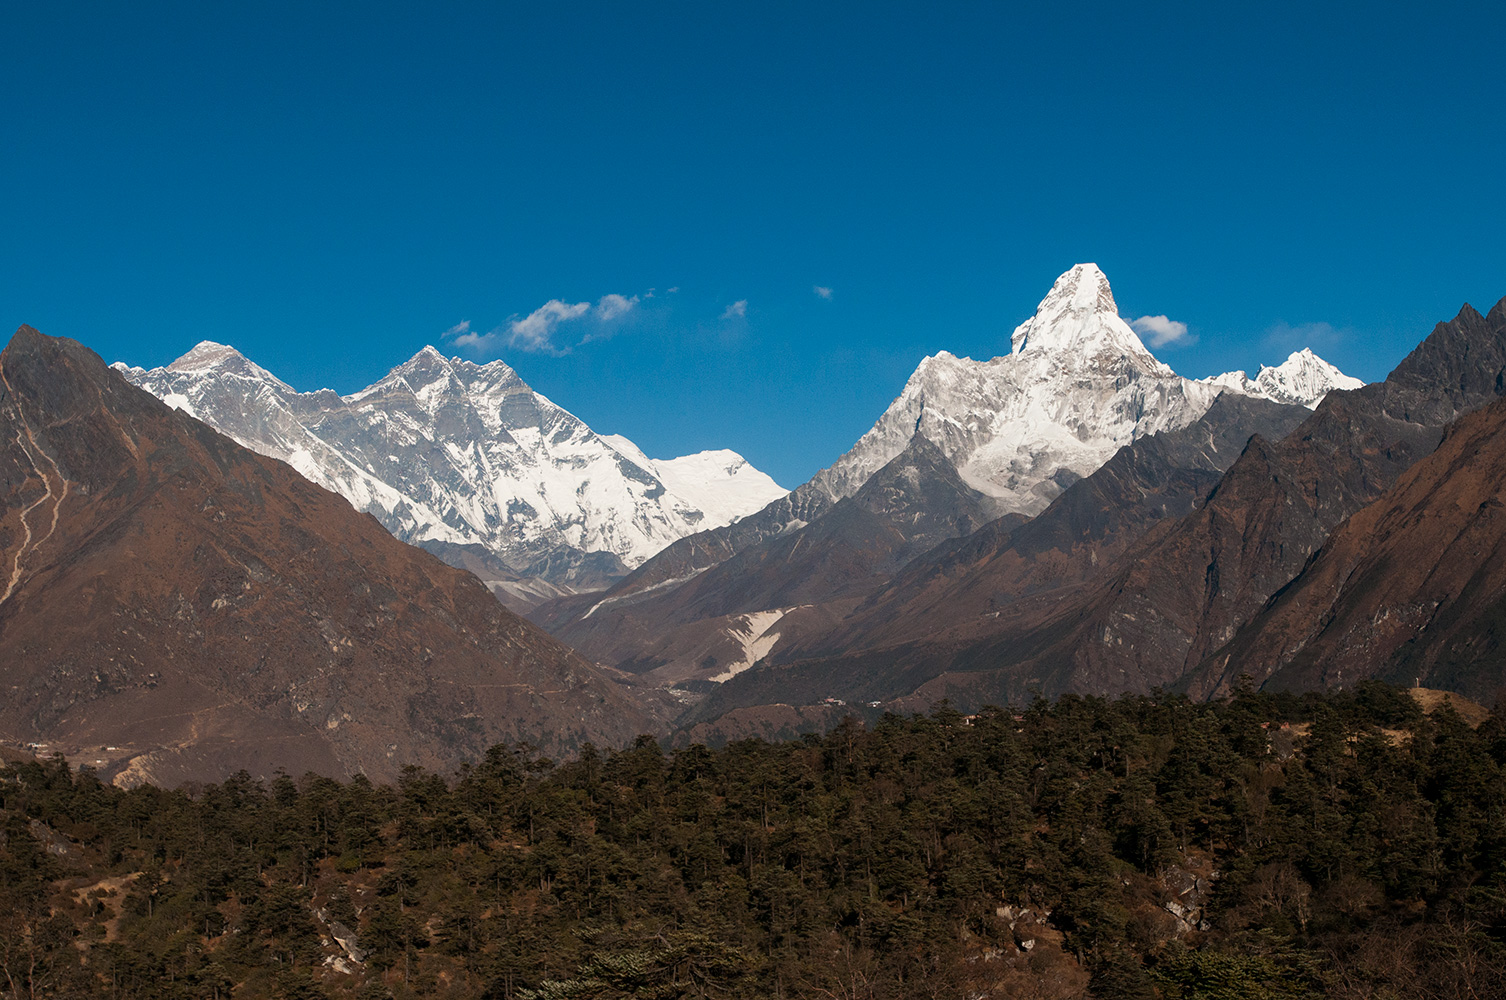 Everest, Lhotse, Ama Dablam and Tengboche Gompa from the trail above Namche BazaarNikon D300, 17-35mm, December 2008